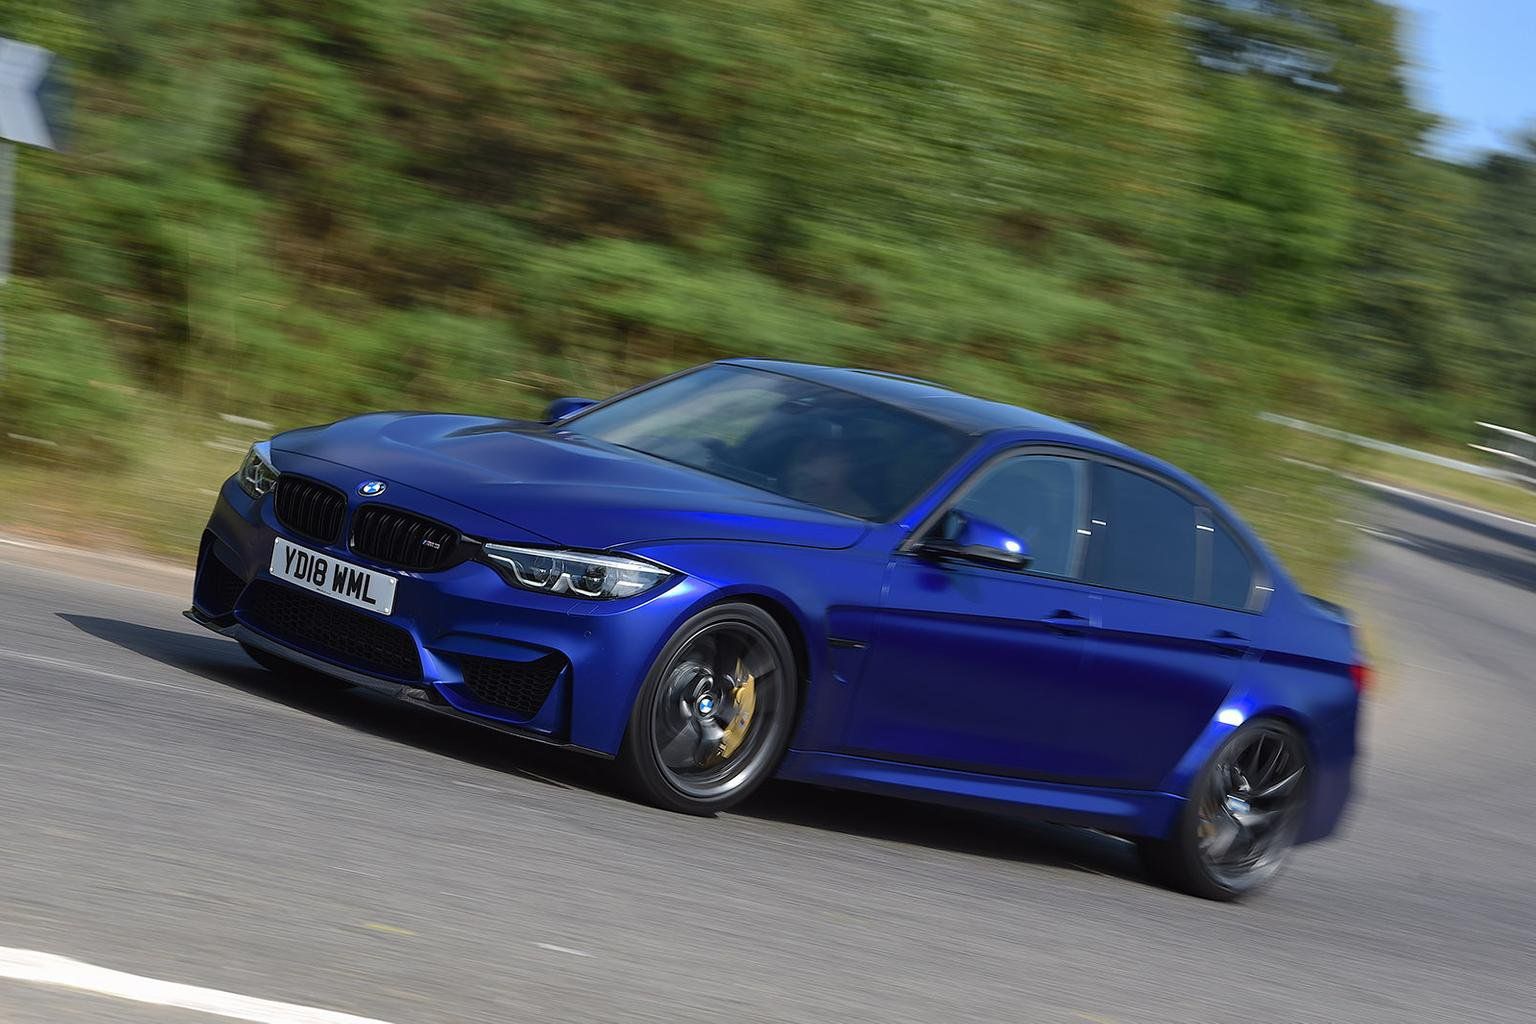 2018 BMW M3 CS verdict